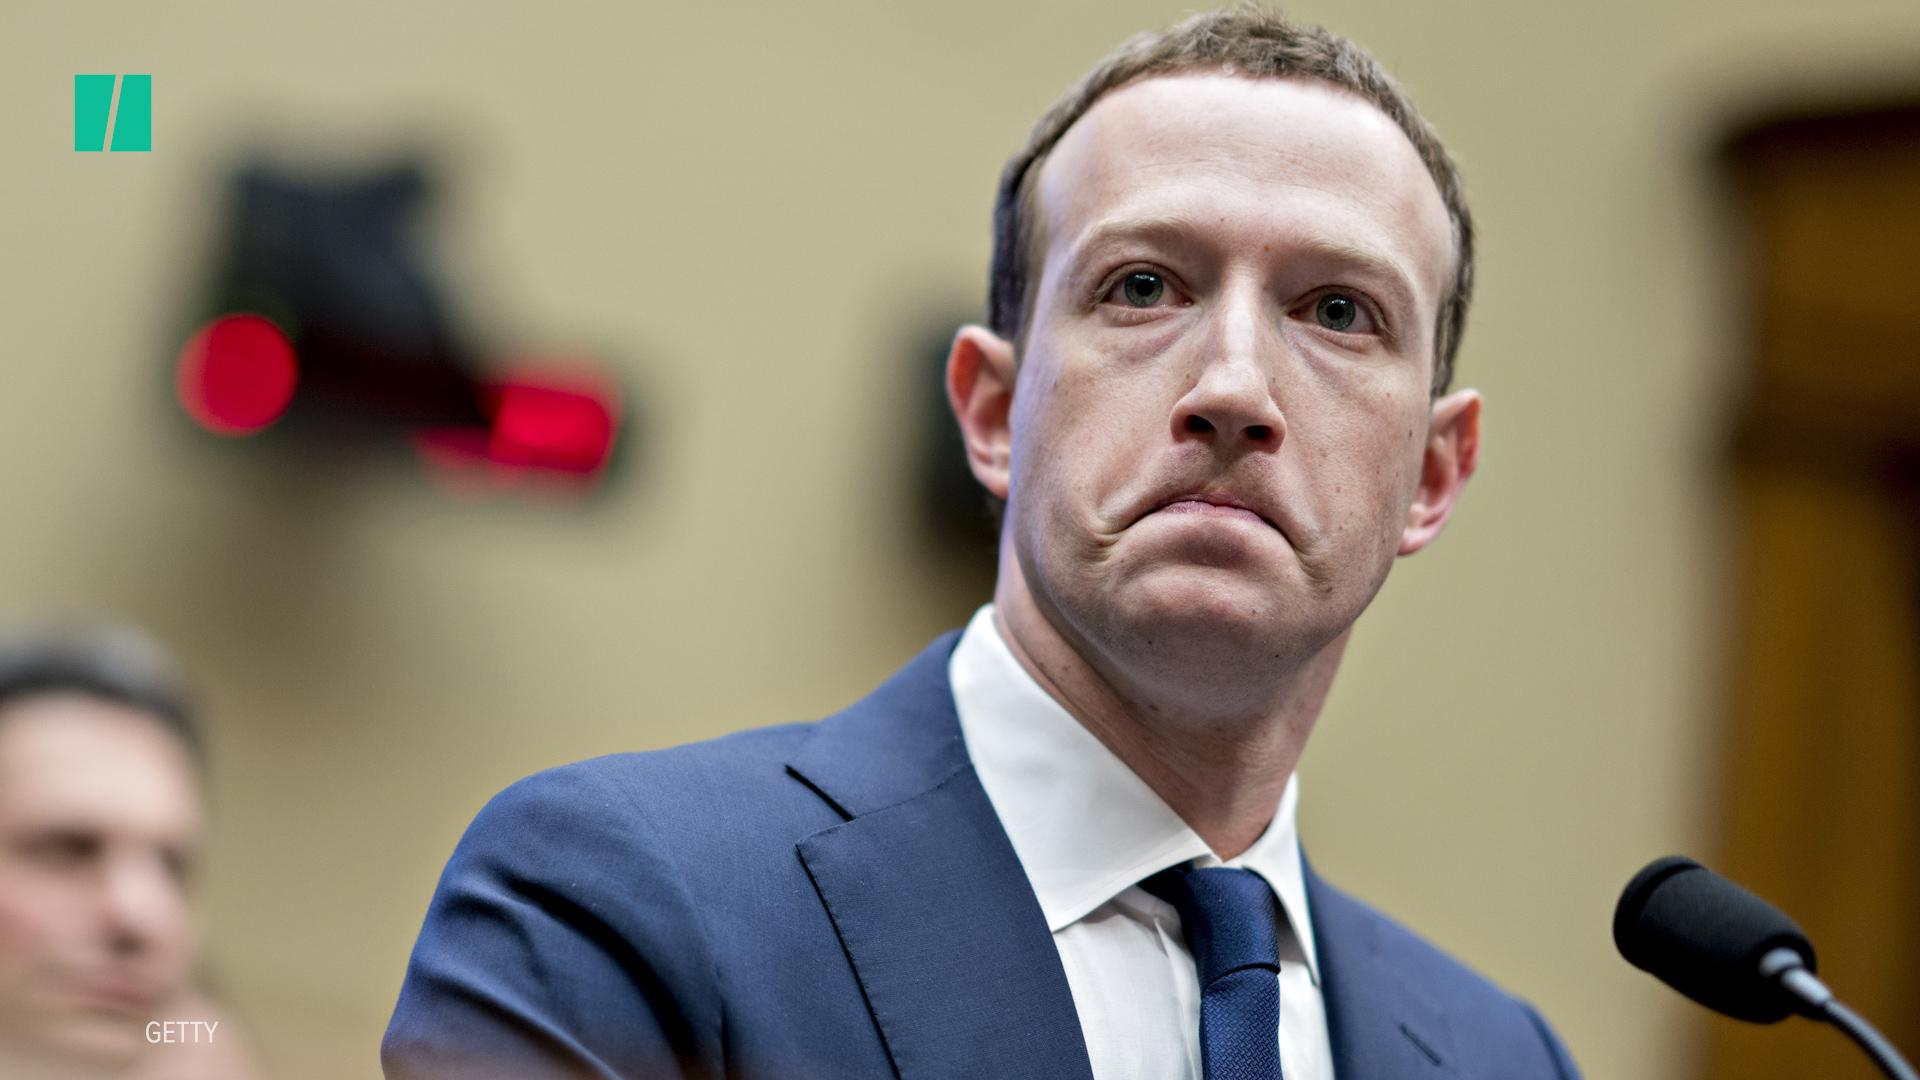 Senator Urges FTC To Hold Zuckerberg Personally Liable For Facebook's Failures